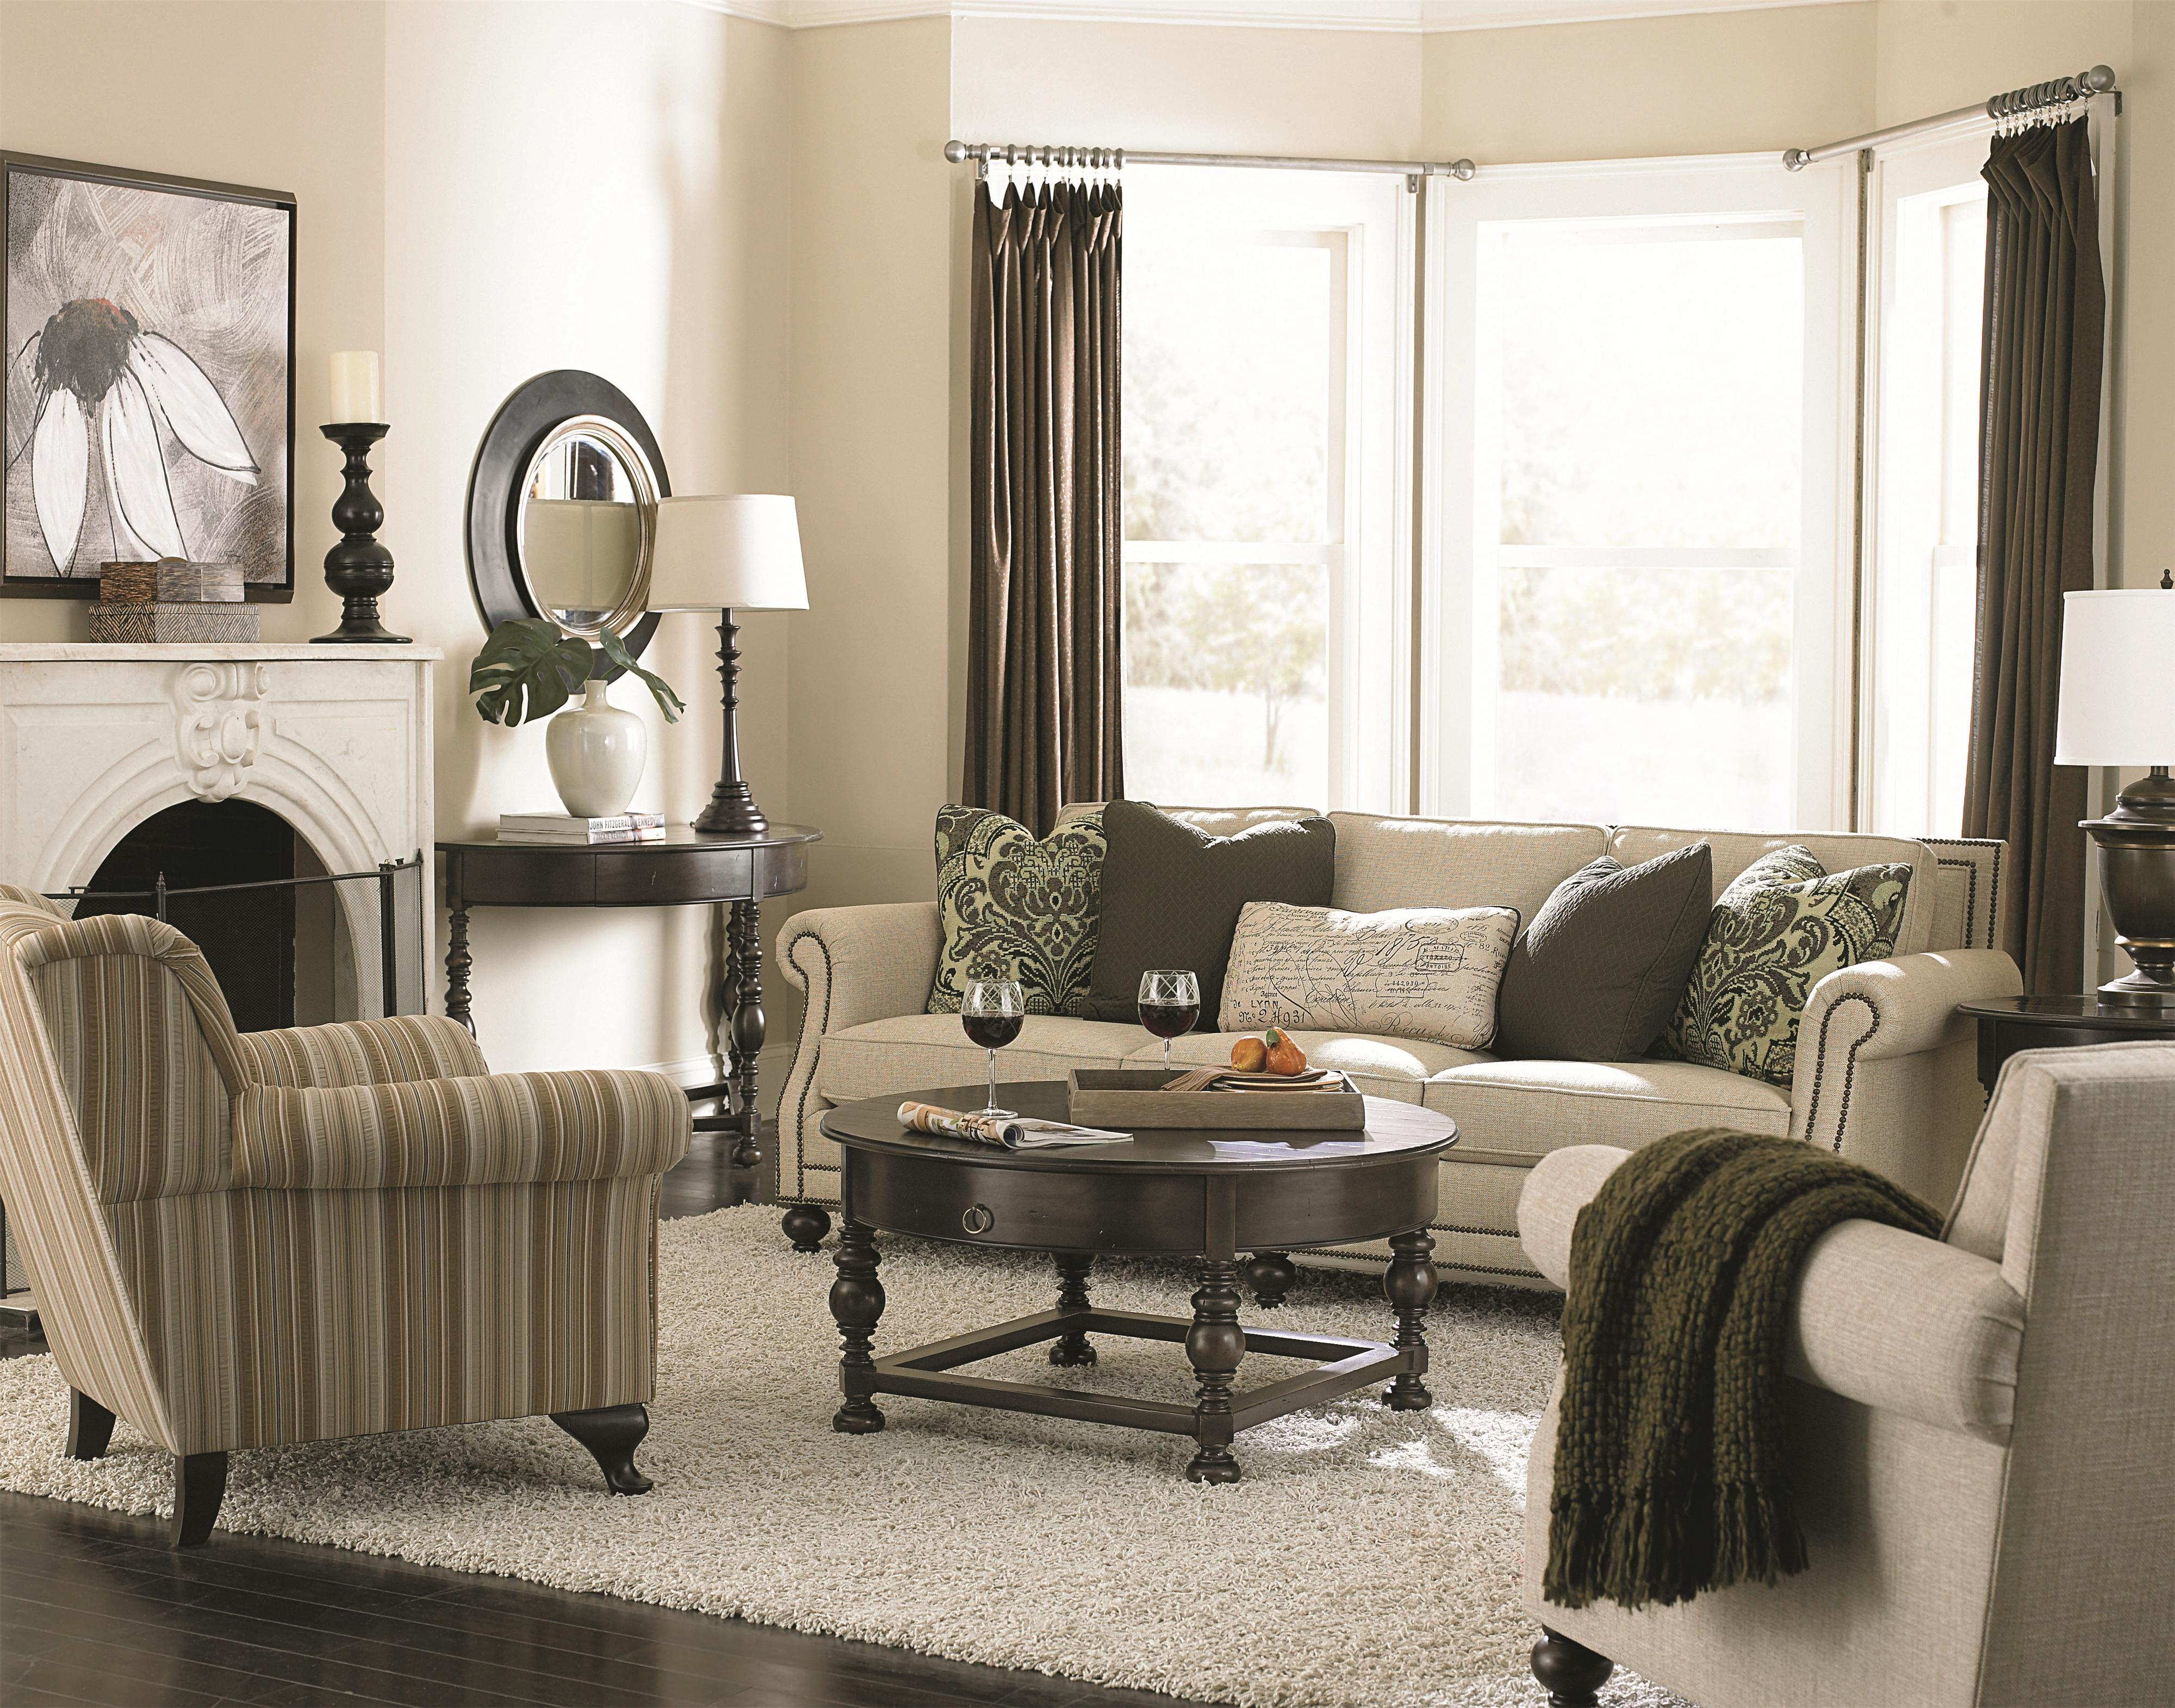 Bernhardt brae b6717 elegant and traditional living room sofa with high end furniture style Bernhardt living room furniture